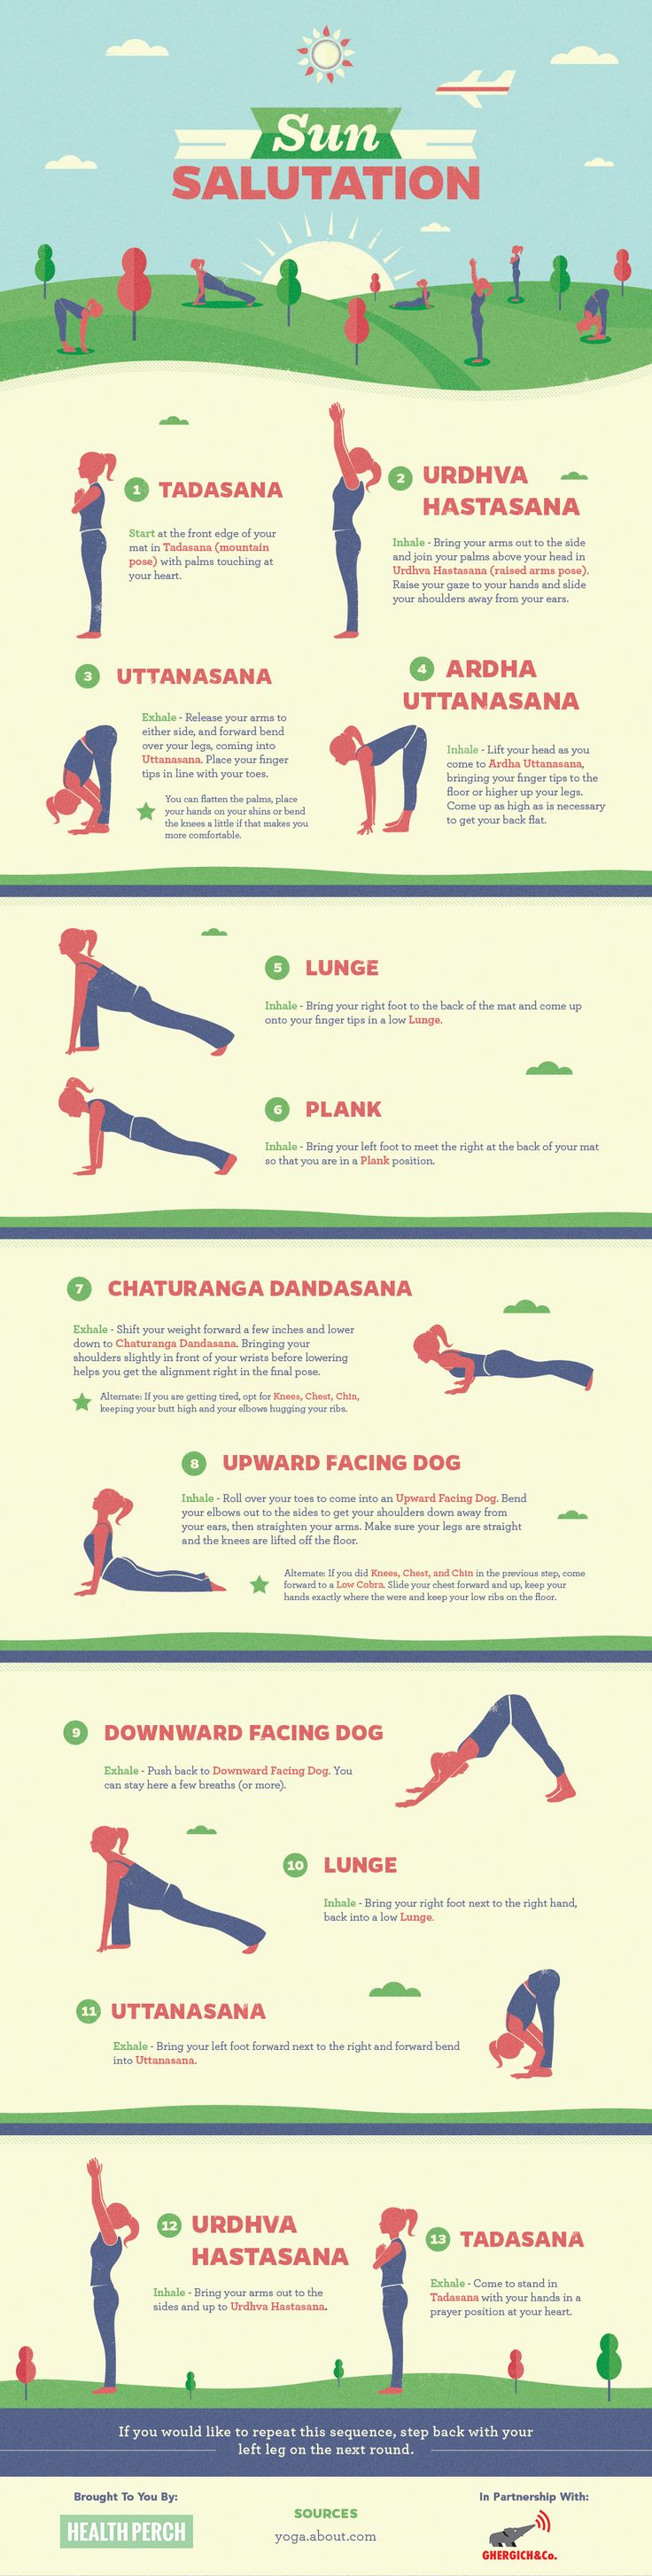 How to... Cómo hacer el saludo  al sol http://blog.gaiam.com/infographic-how-to-do-sun-salutation/